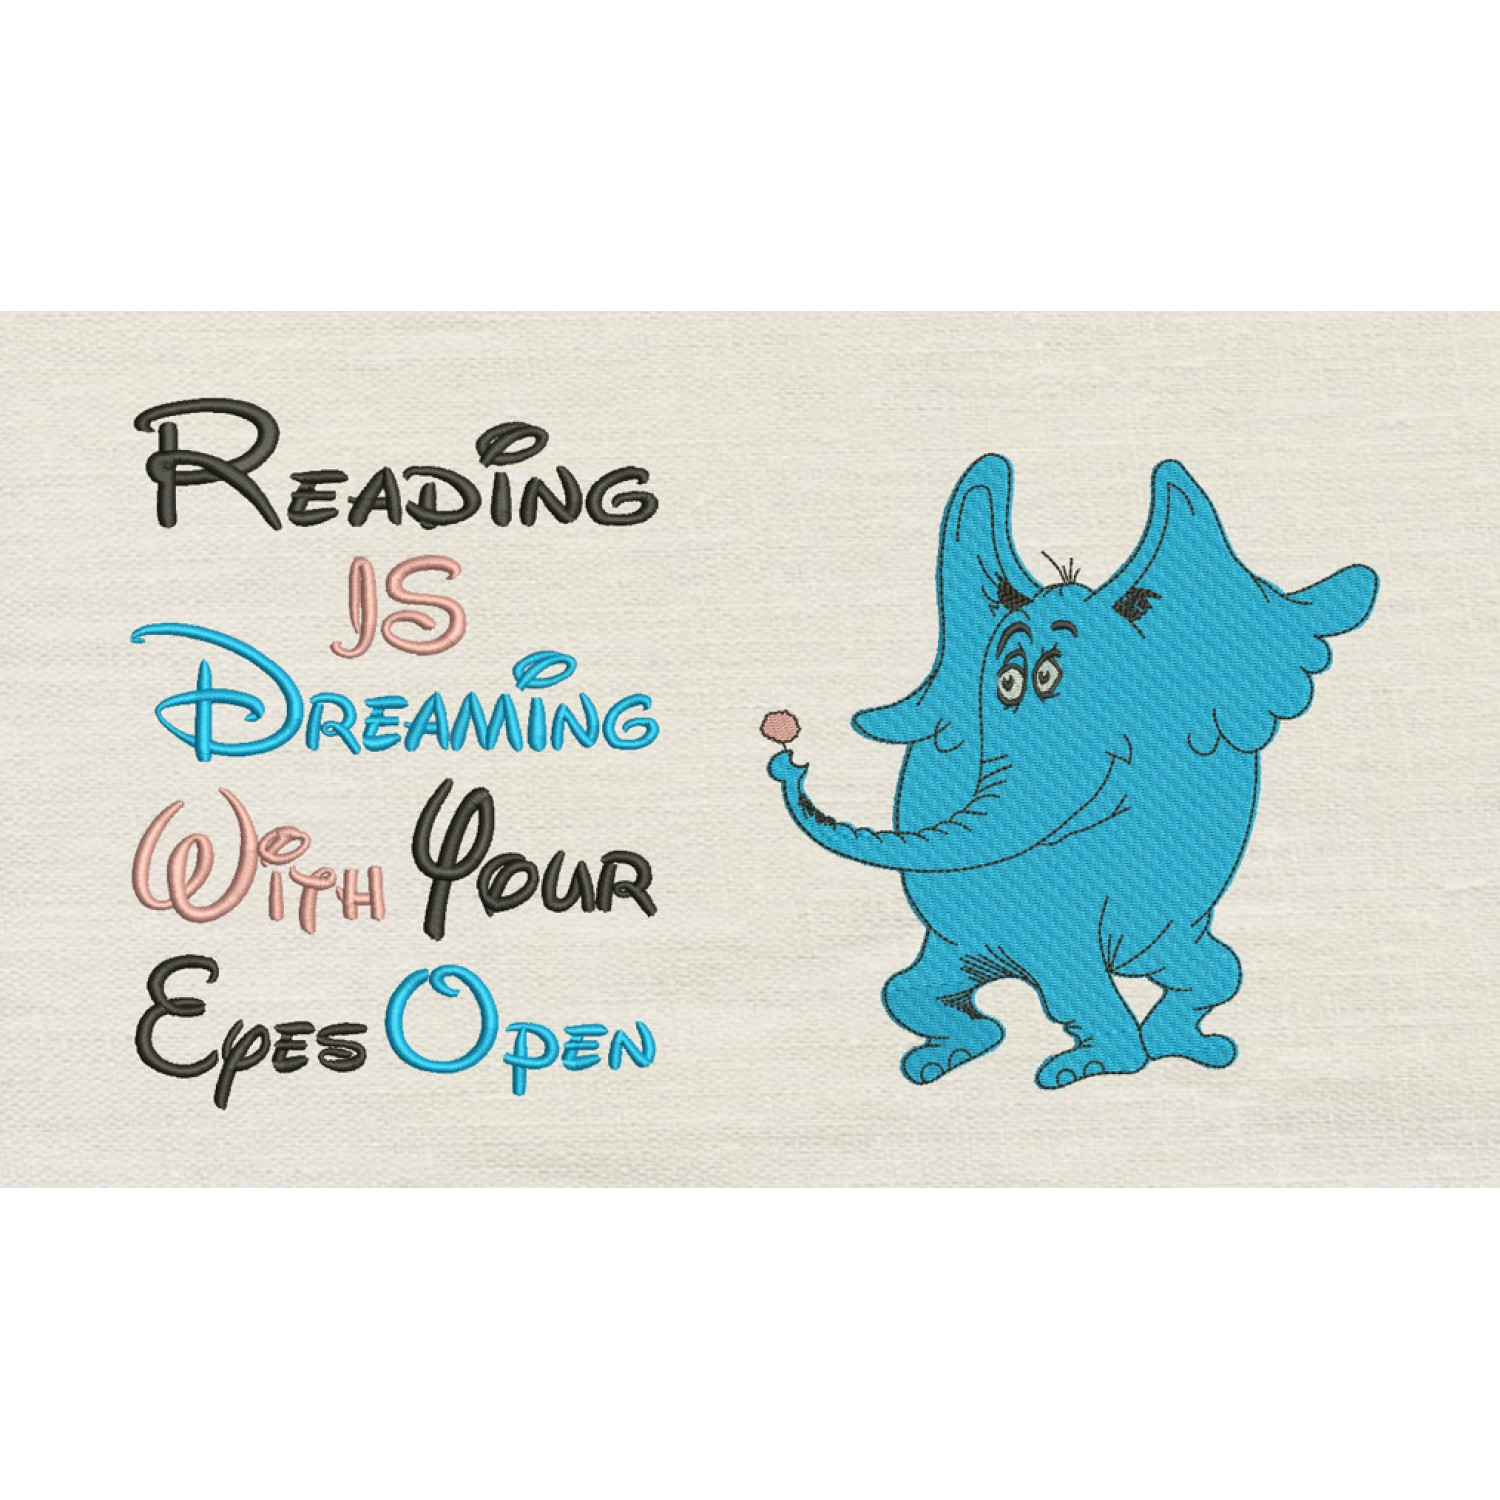 Horton with reading is dreaming